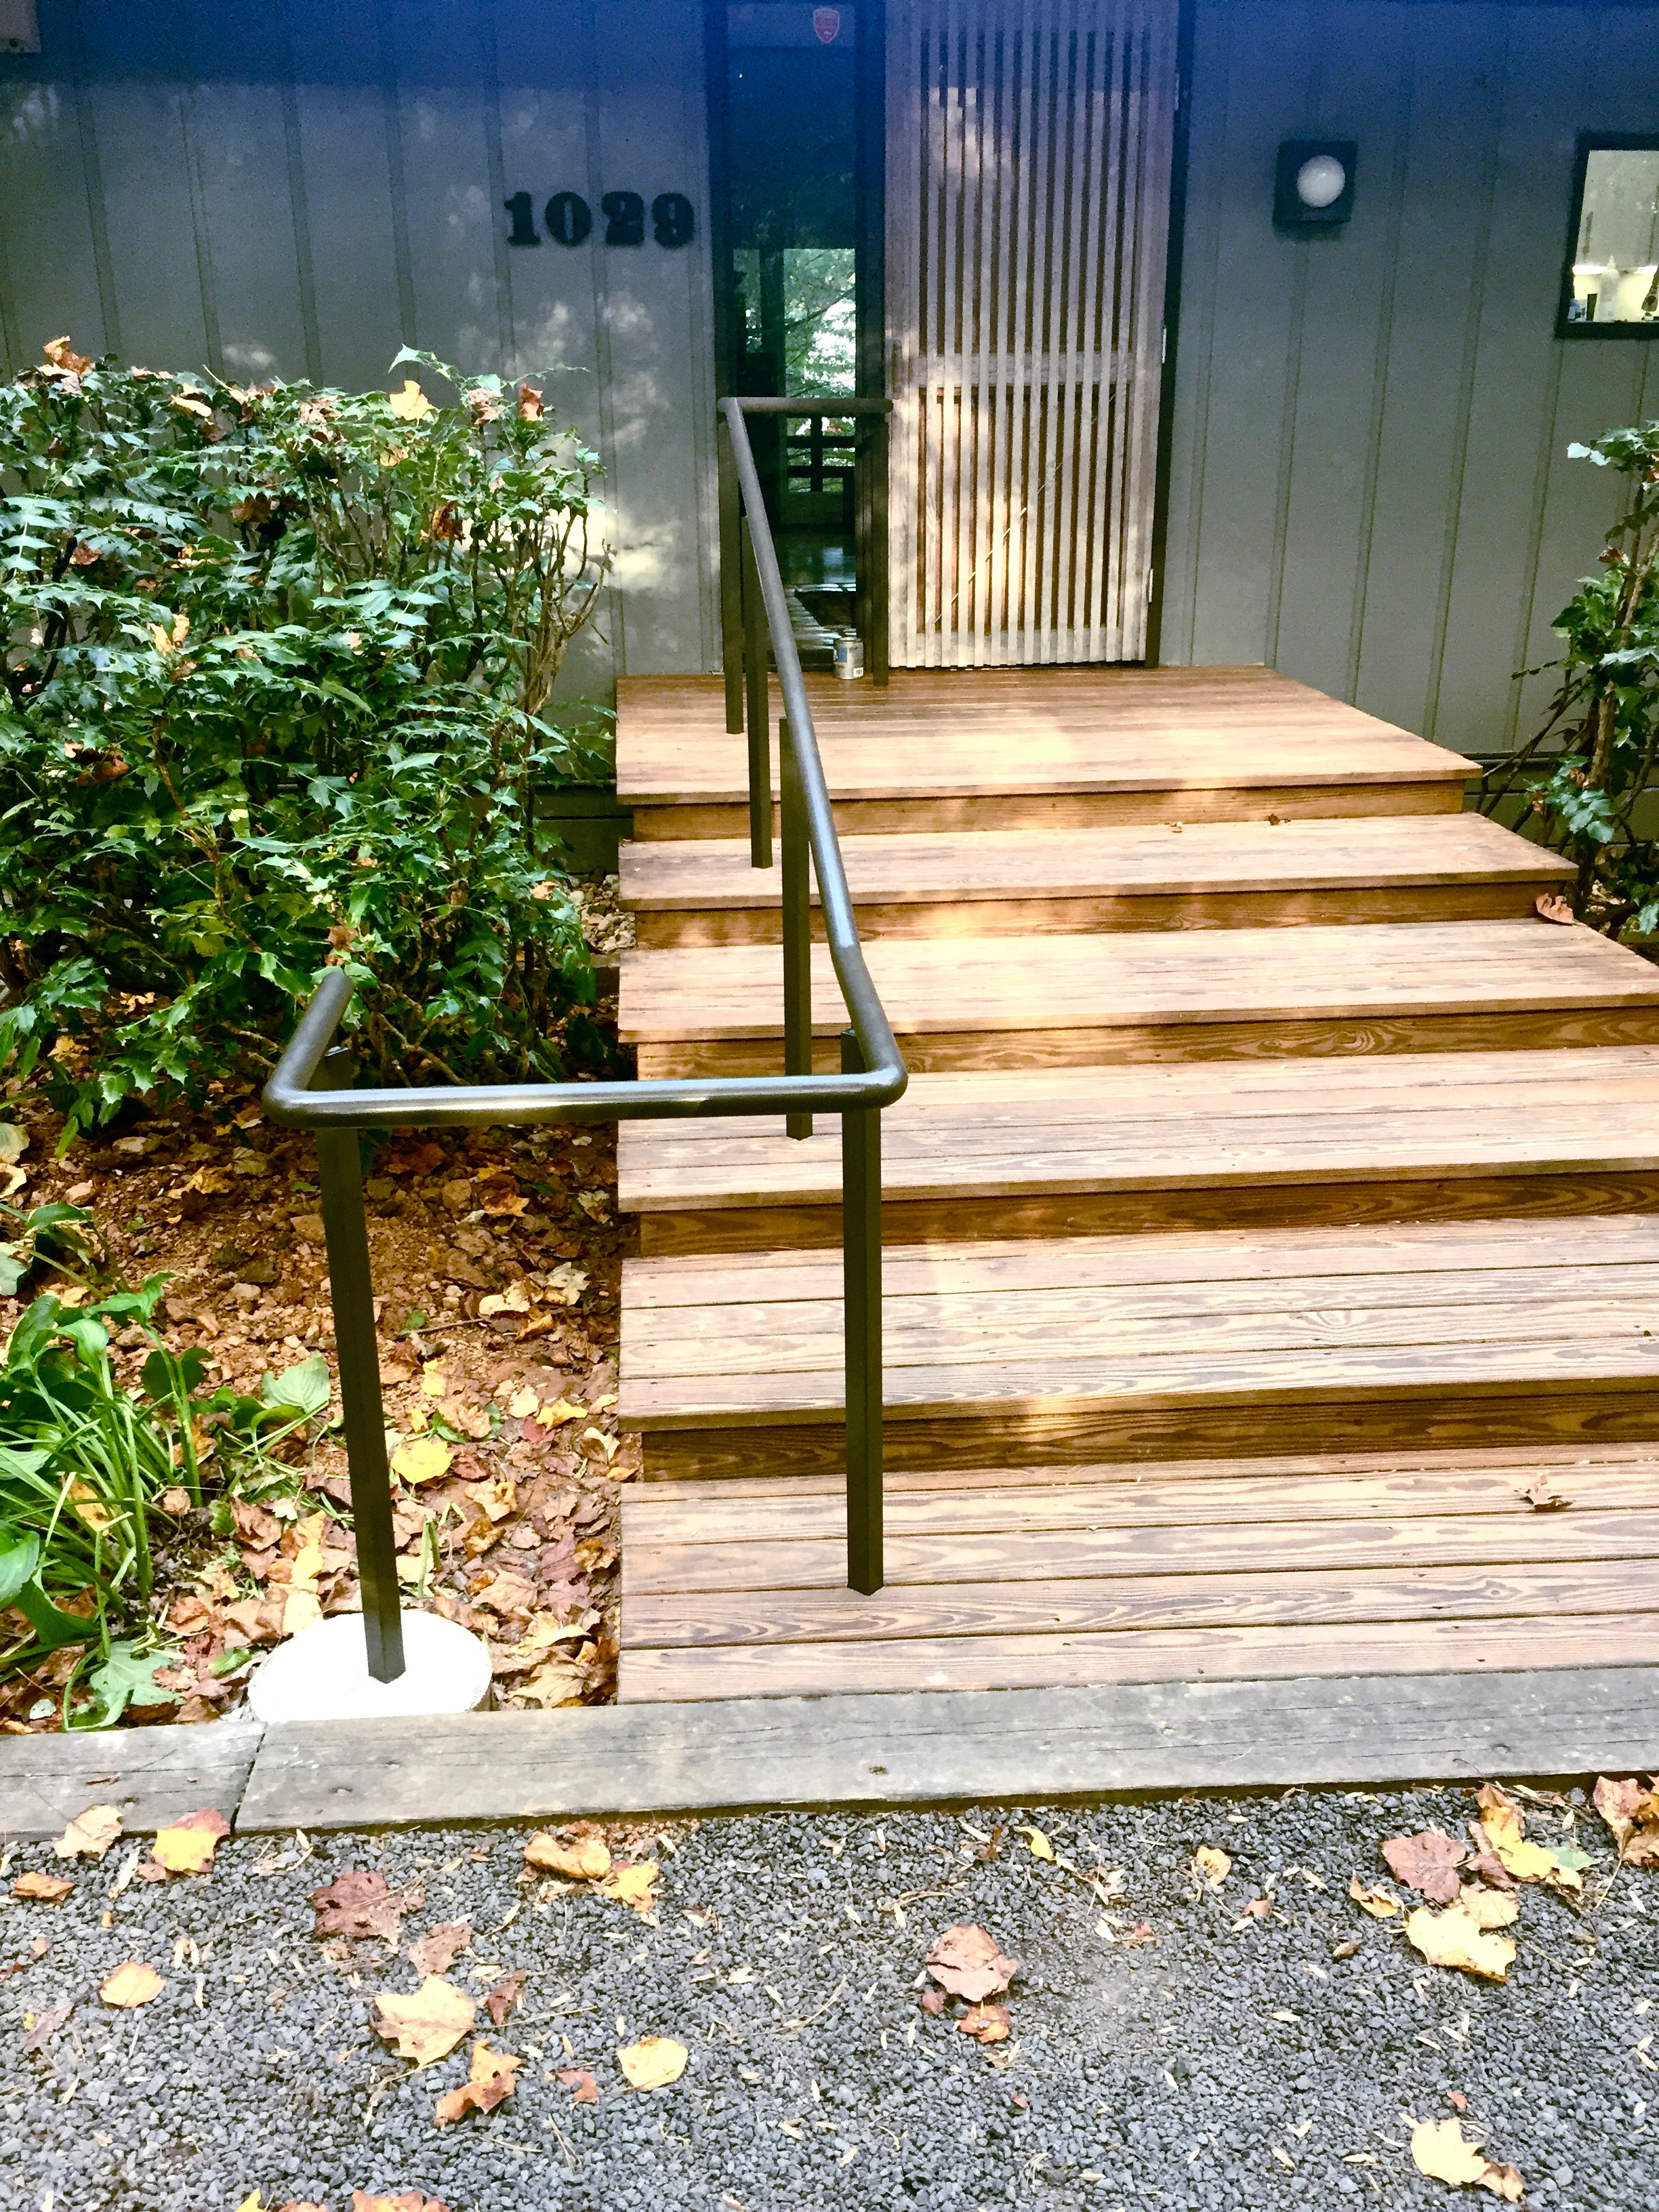 New railing was added to these front steps